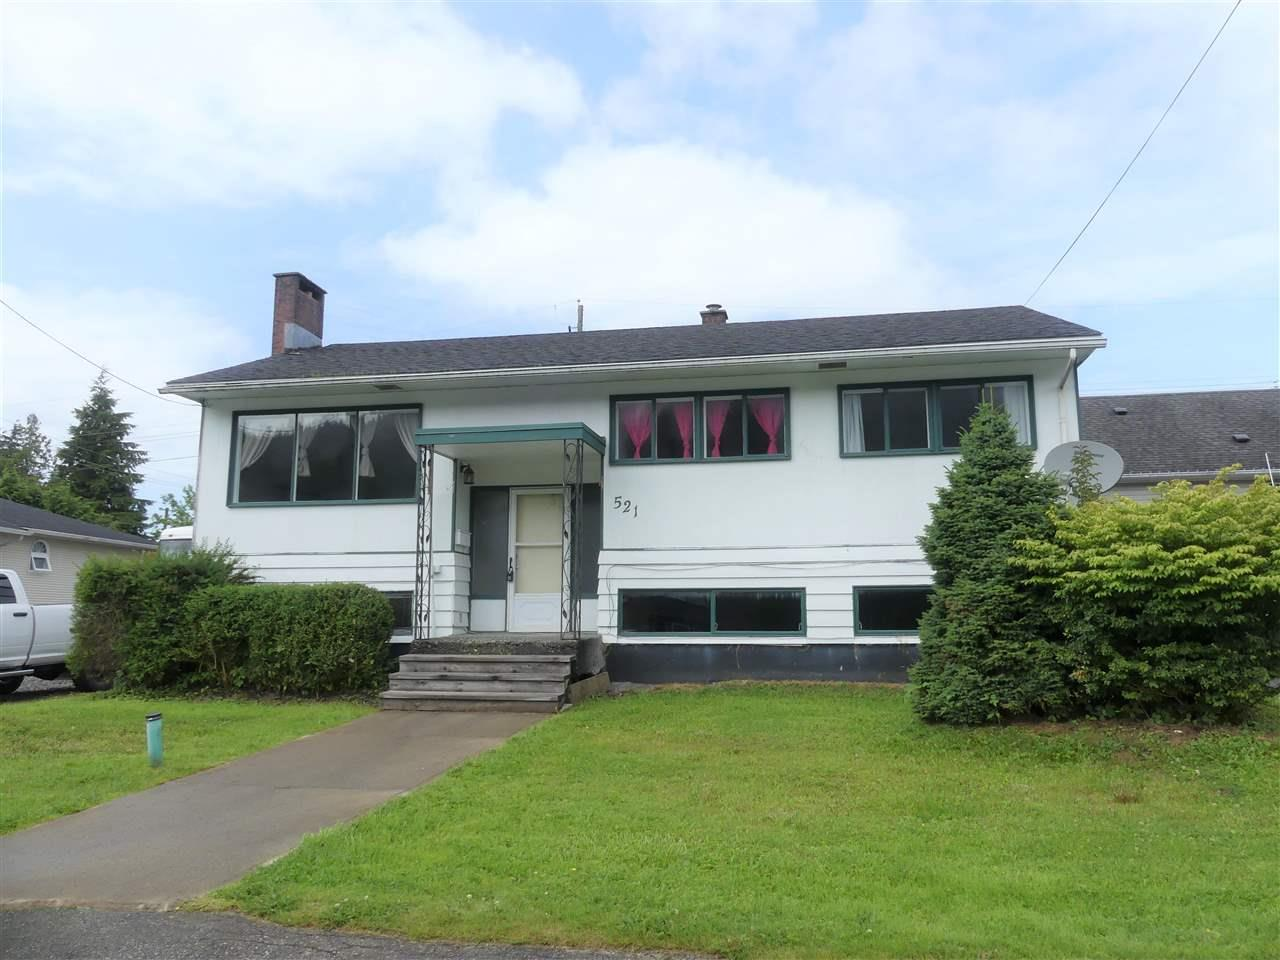 Removed: 521 East 11 Avenue, Prince Rupert, BC - Removed on 2020-01-18 11:57:09